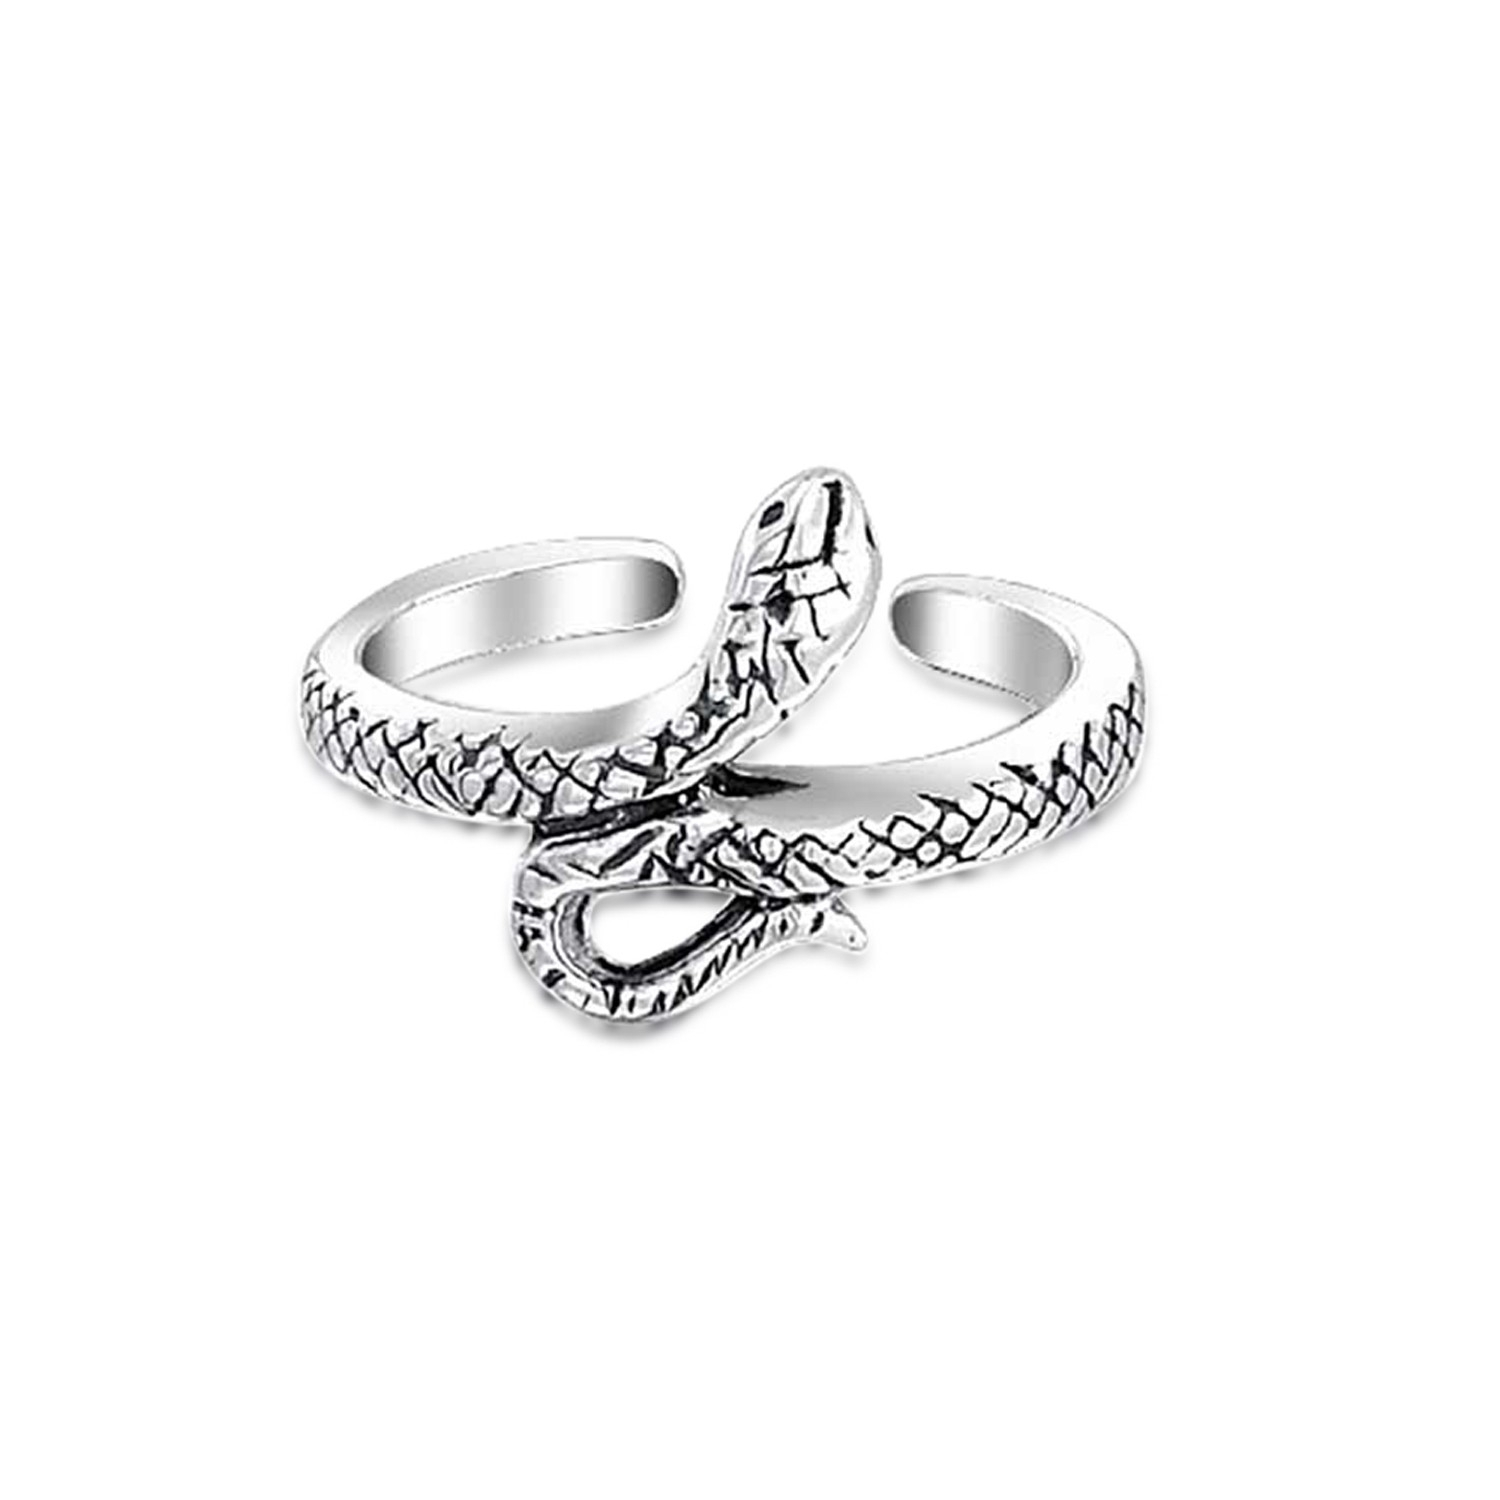 Oxidized 925 Silver Snake Toe Ring Adjustable Midi Rings Intended For Best And Newest Platinum Toe Rings (View 8 of 15)